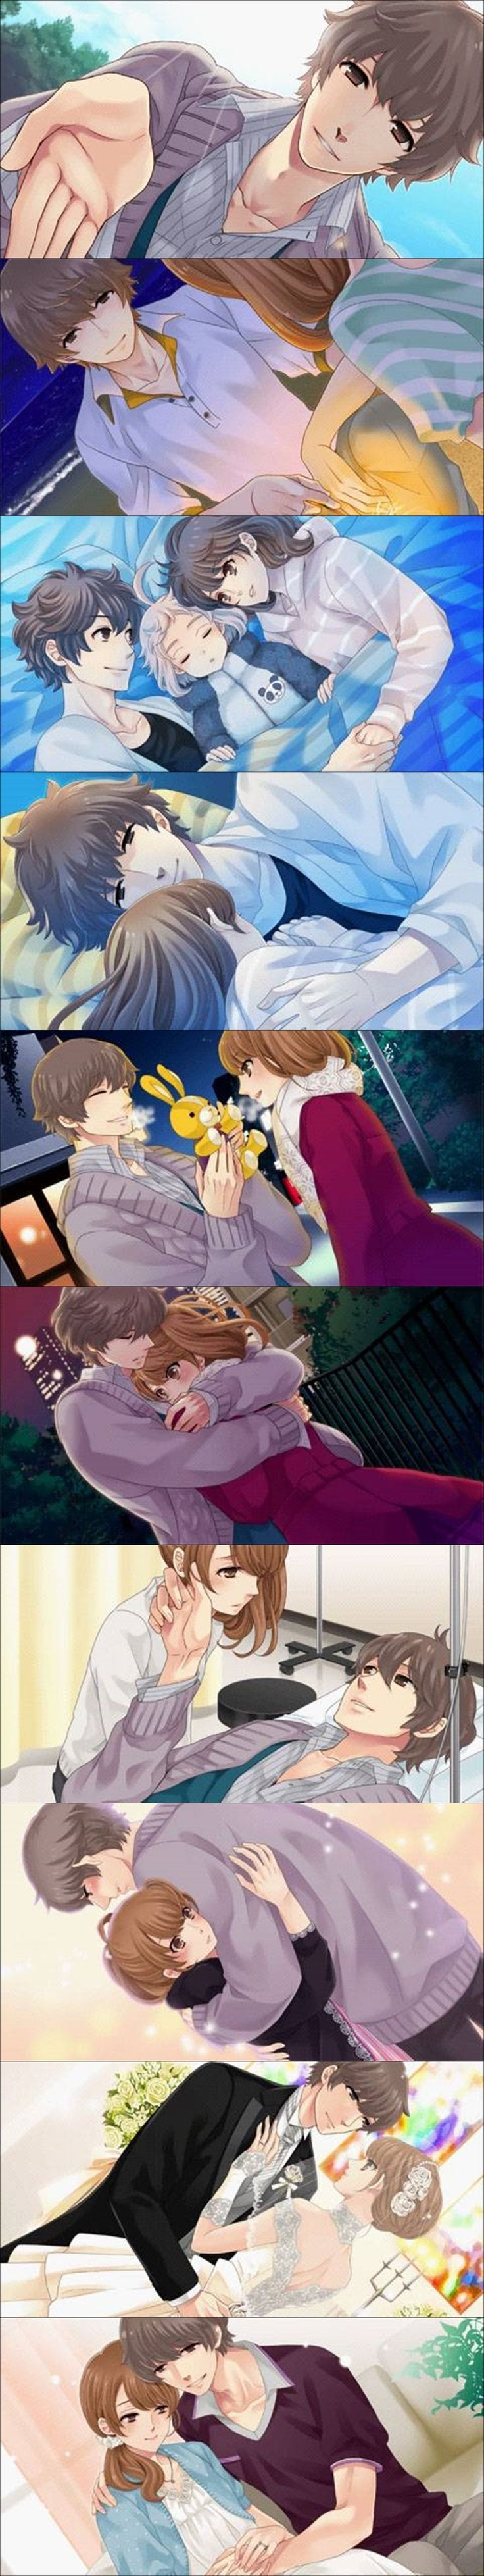 Brothers Conflict - Masaomi and Ema